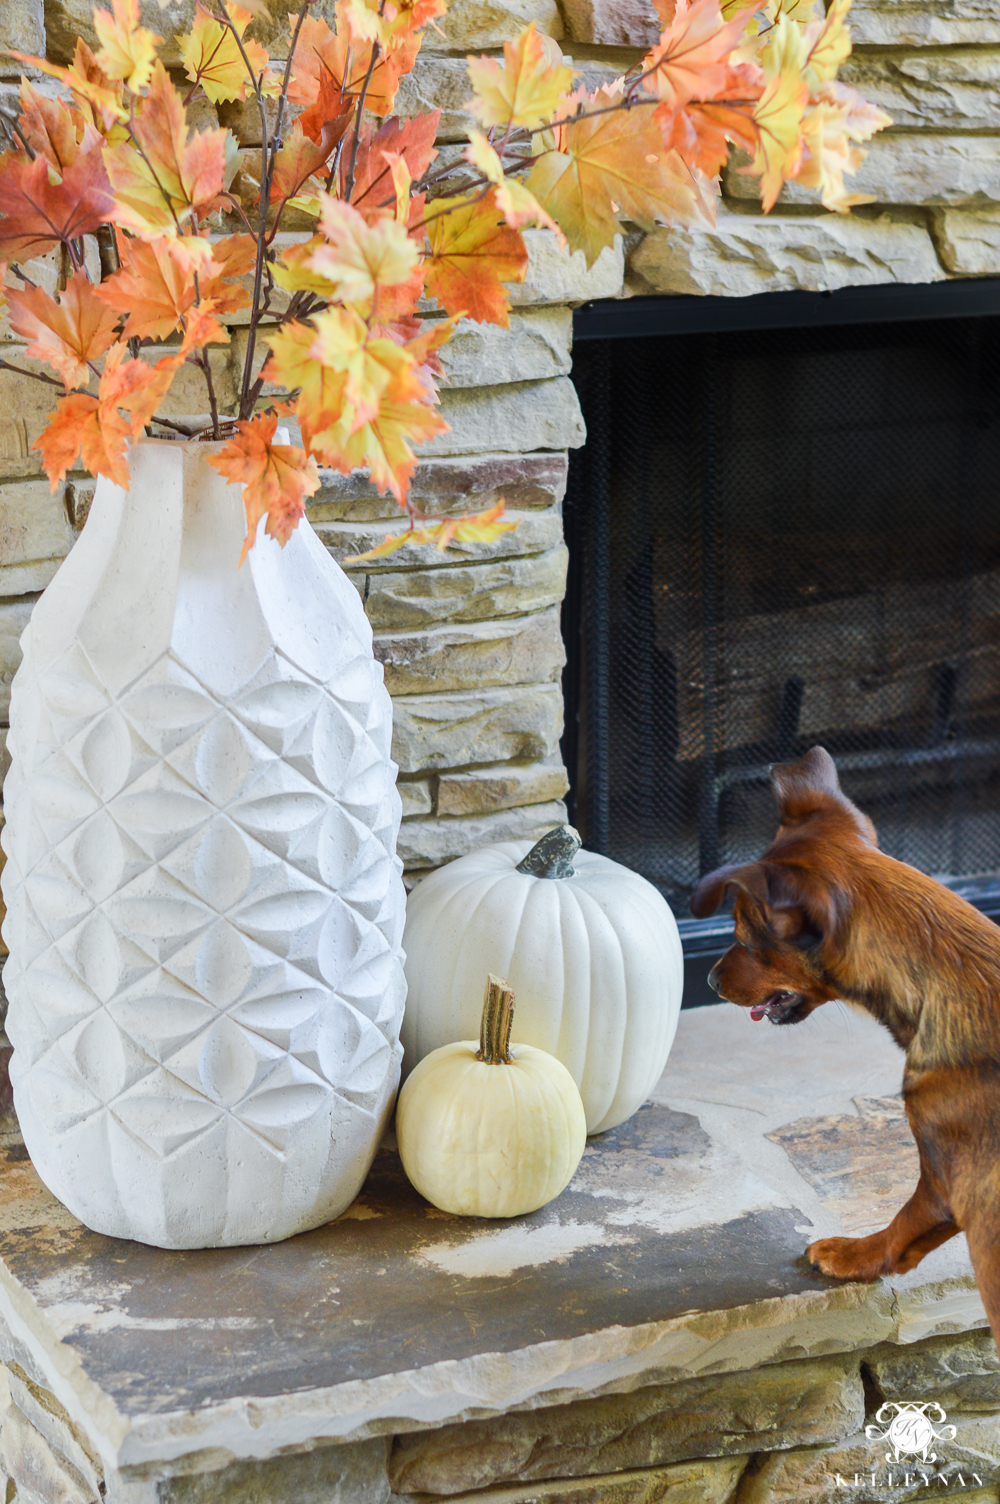 2017 Fall Home Tour with Yellow and Orange Leaves- dorkie puppy